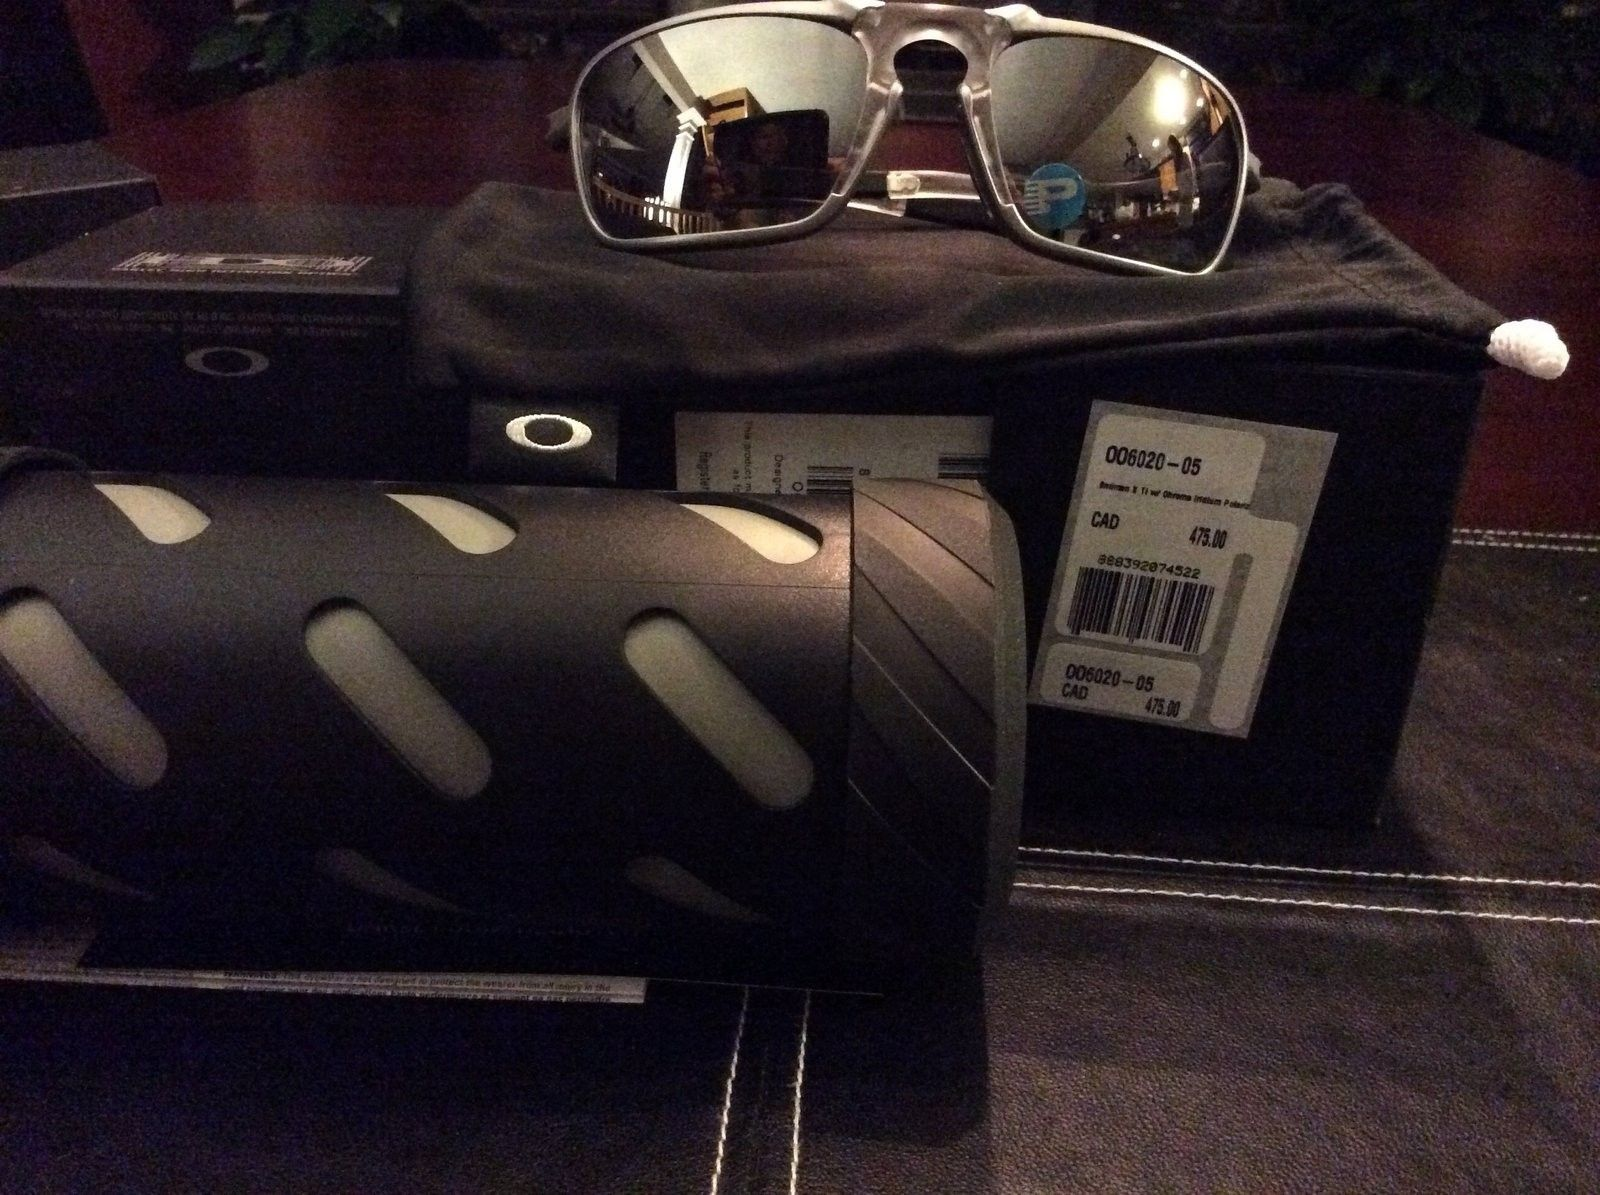 Bnib badman x-ti Chrome polarized and XS black polarized - image.jpg